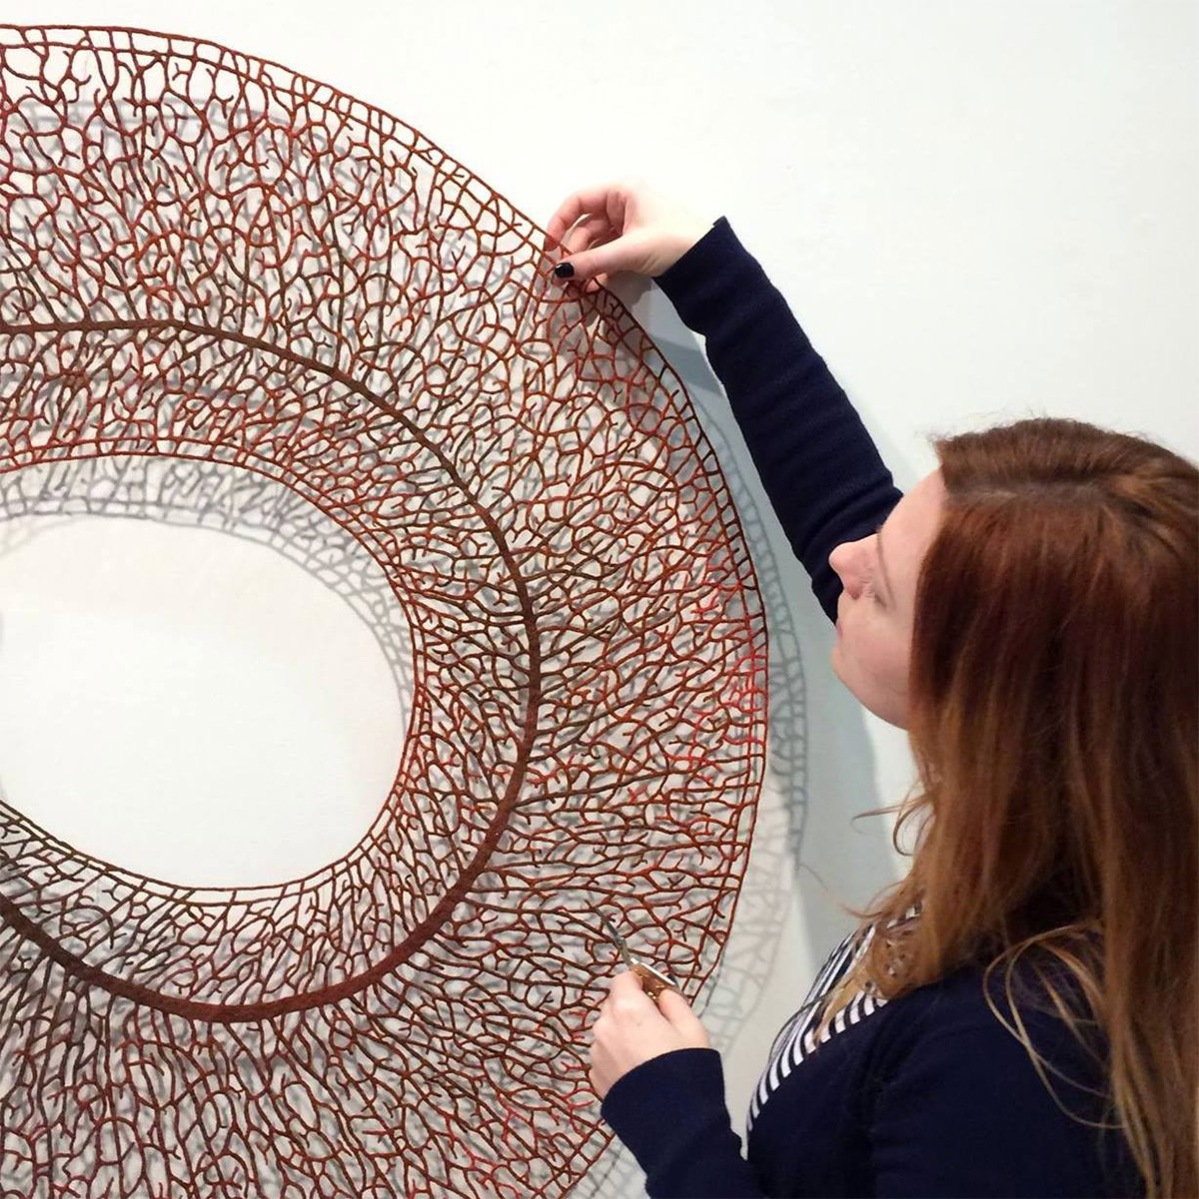 Le sculture ricamate di Meredith Woolnough